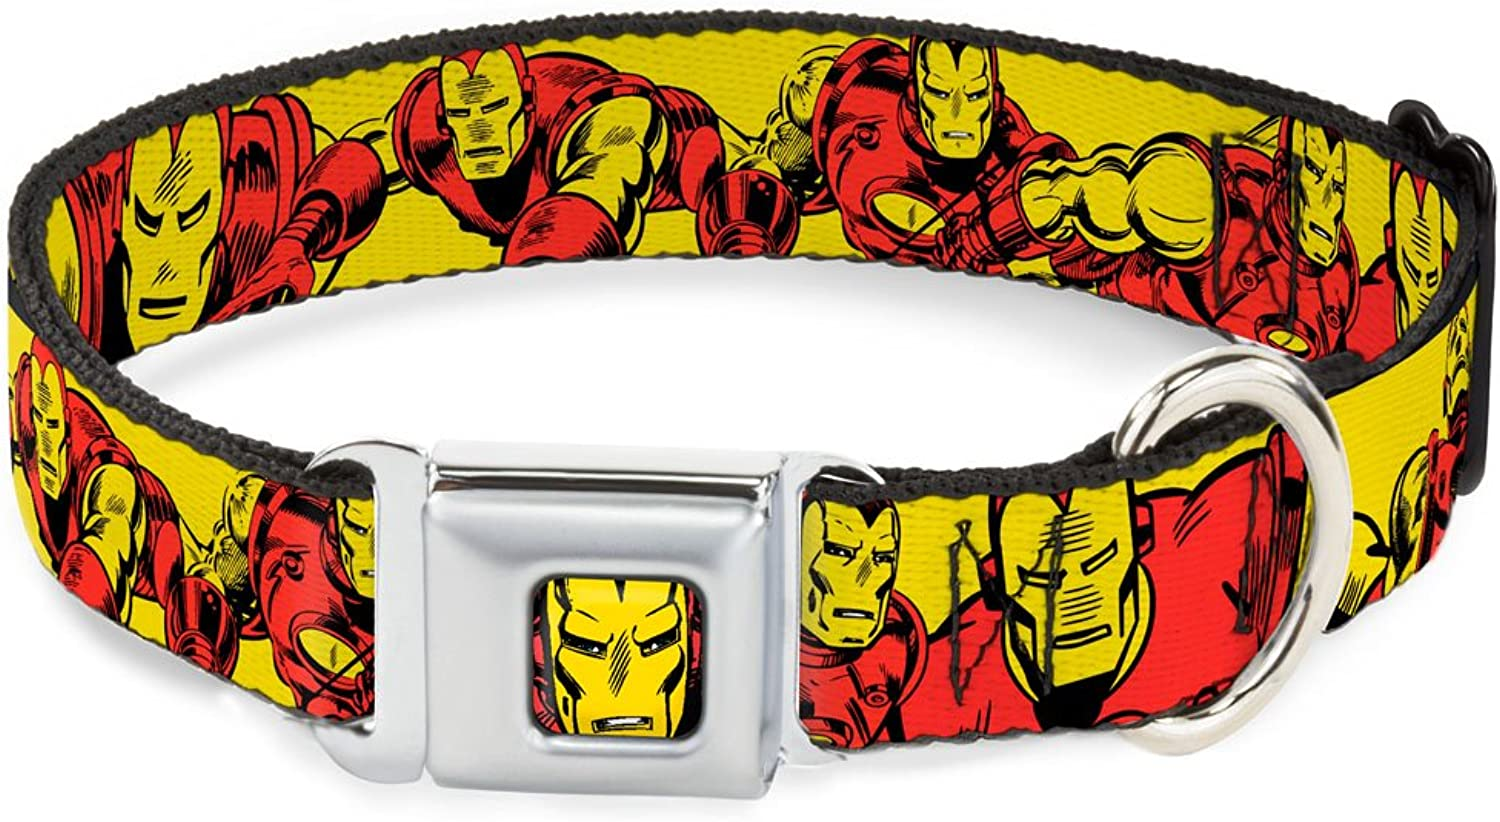 BuckleDown DCWIM004WL Dog Collar Seatbelt Buckle, Iron Man Body Action Repeat Yellow, 1.5  by 1832